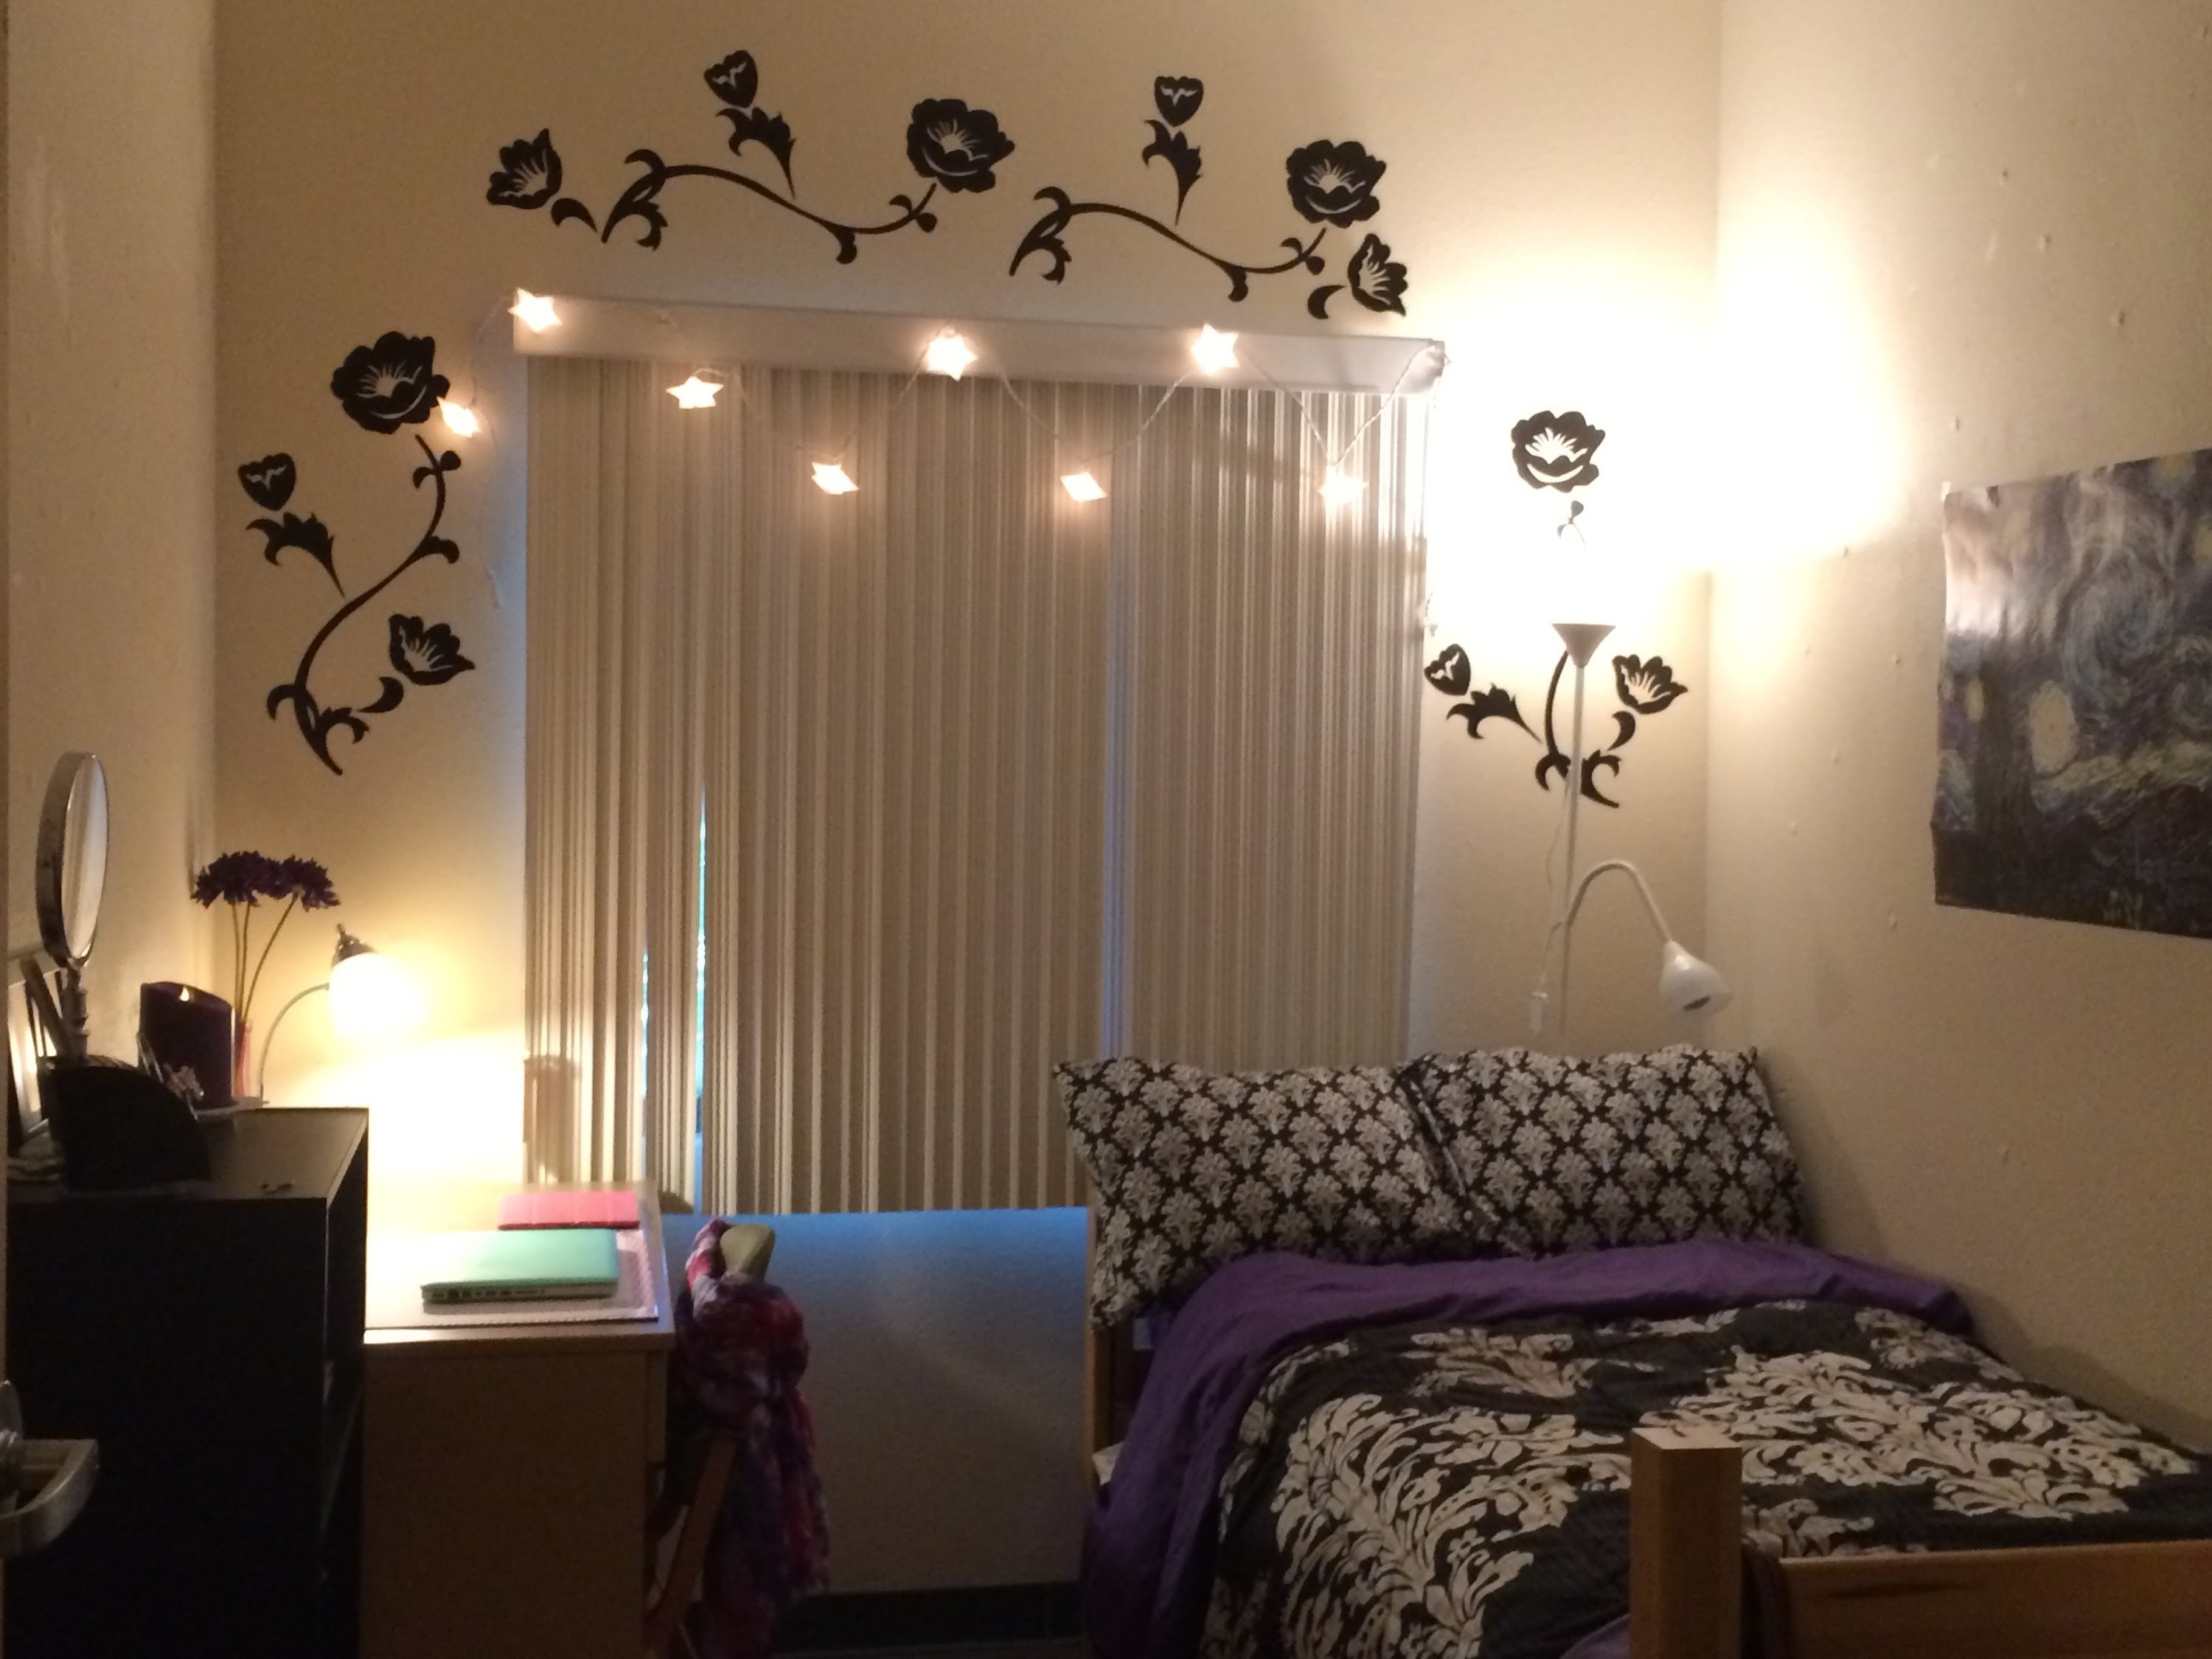 10 Cute College Dorm Ideas For Girls decorating ideas for a dorm roommy daughters room in college youtube 2020